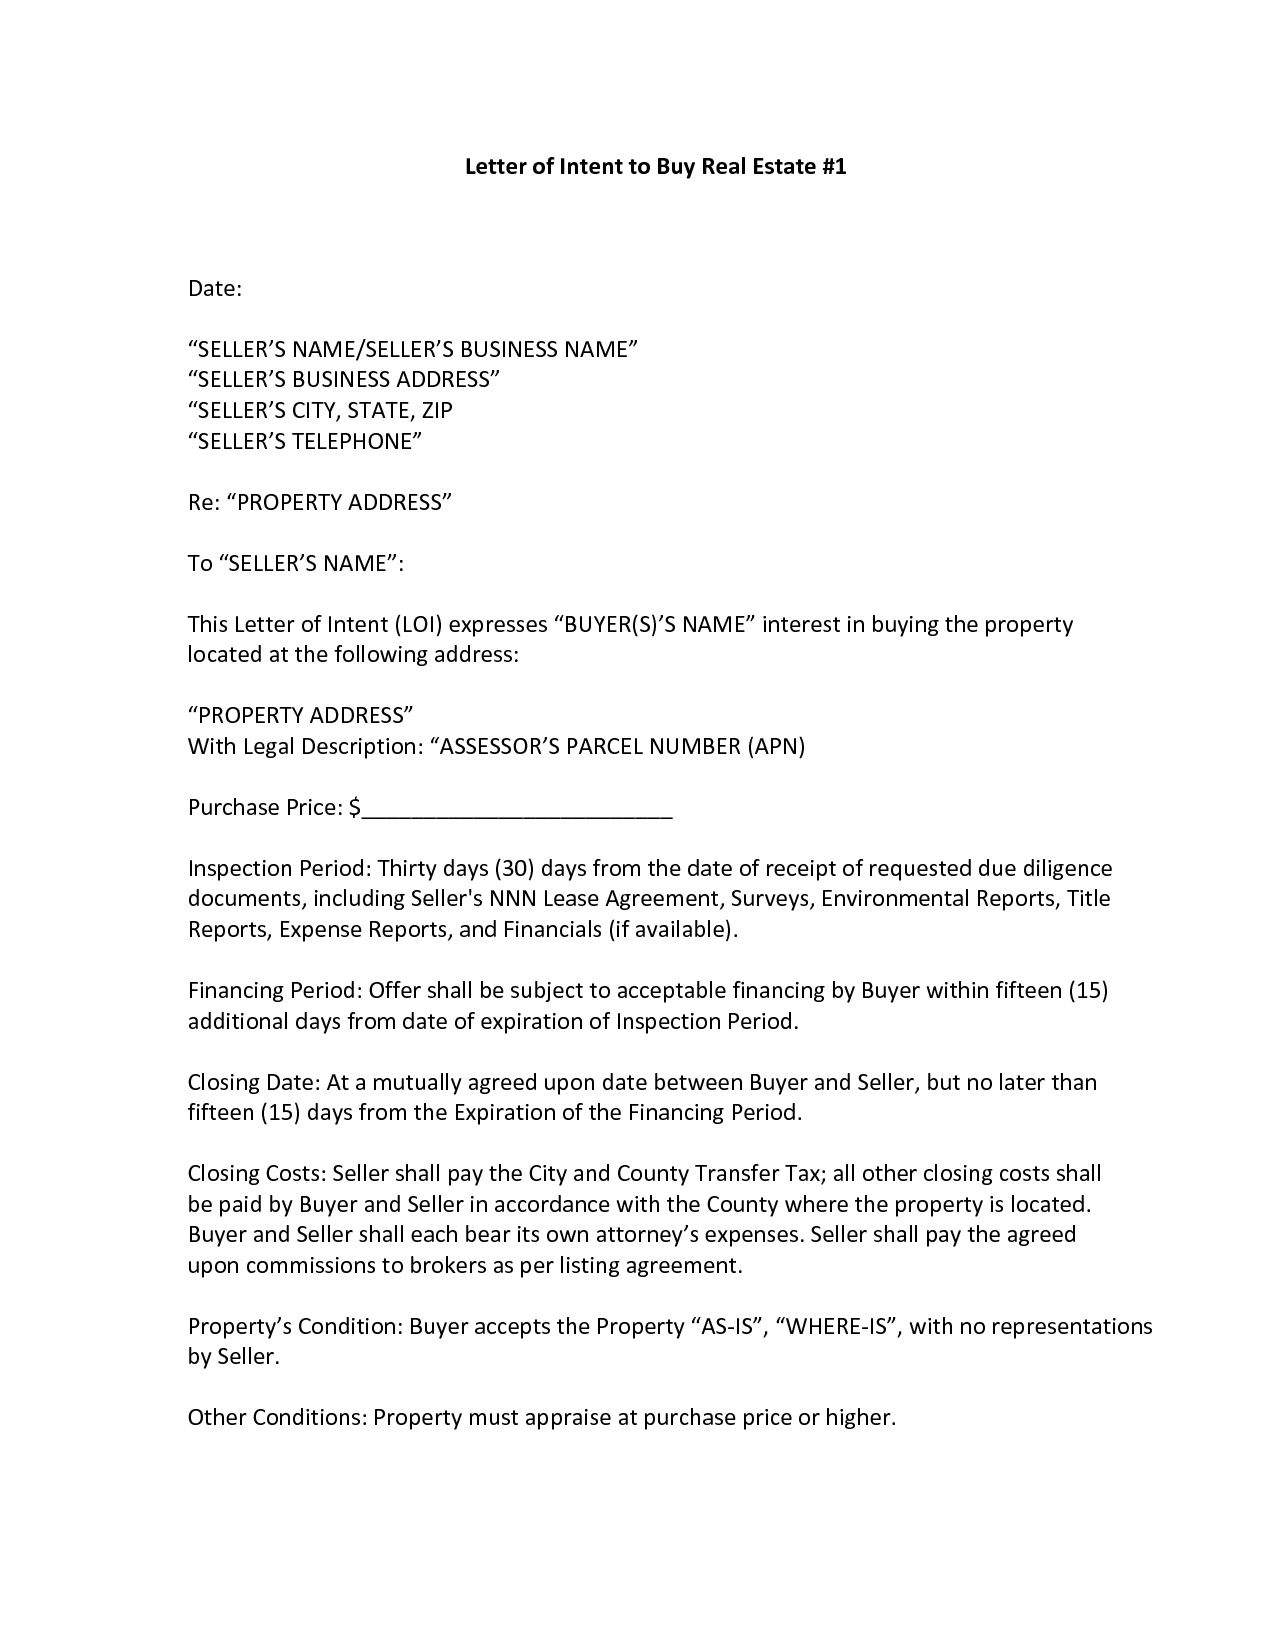 Letter Of Intent to Sell Property Template - Sample Letter Intent Purchase Real Estate New Property Fer